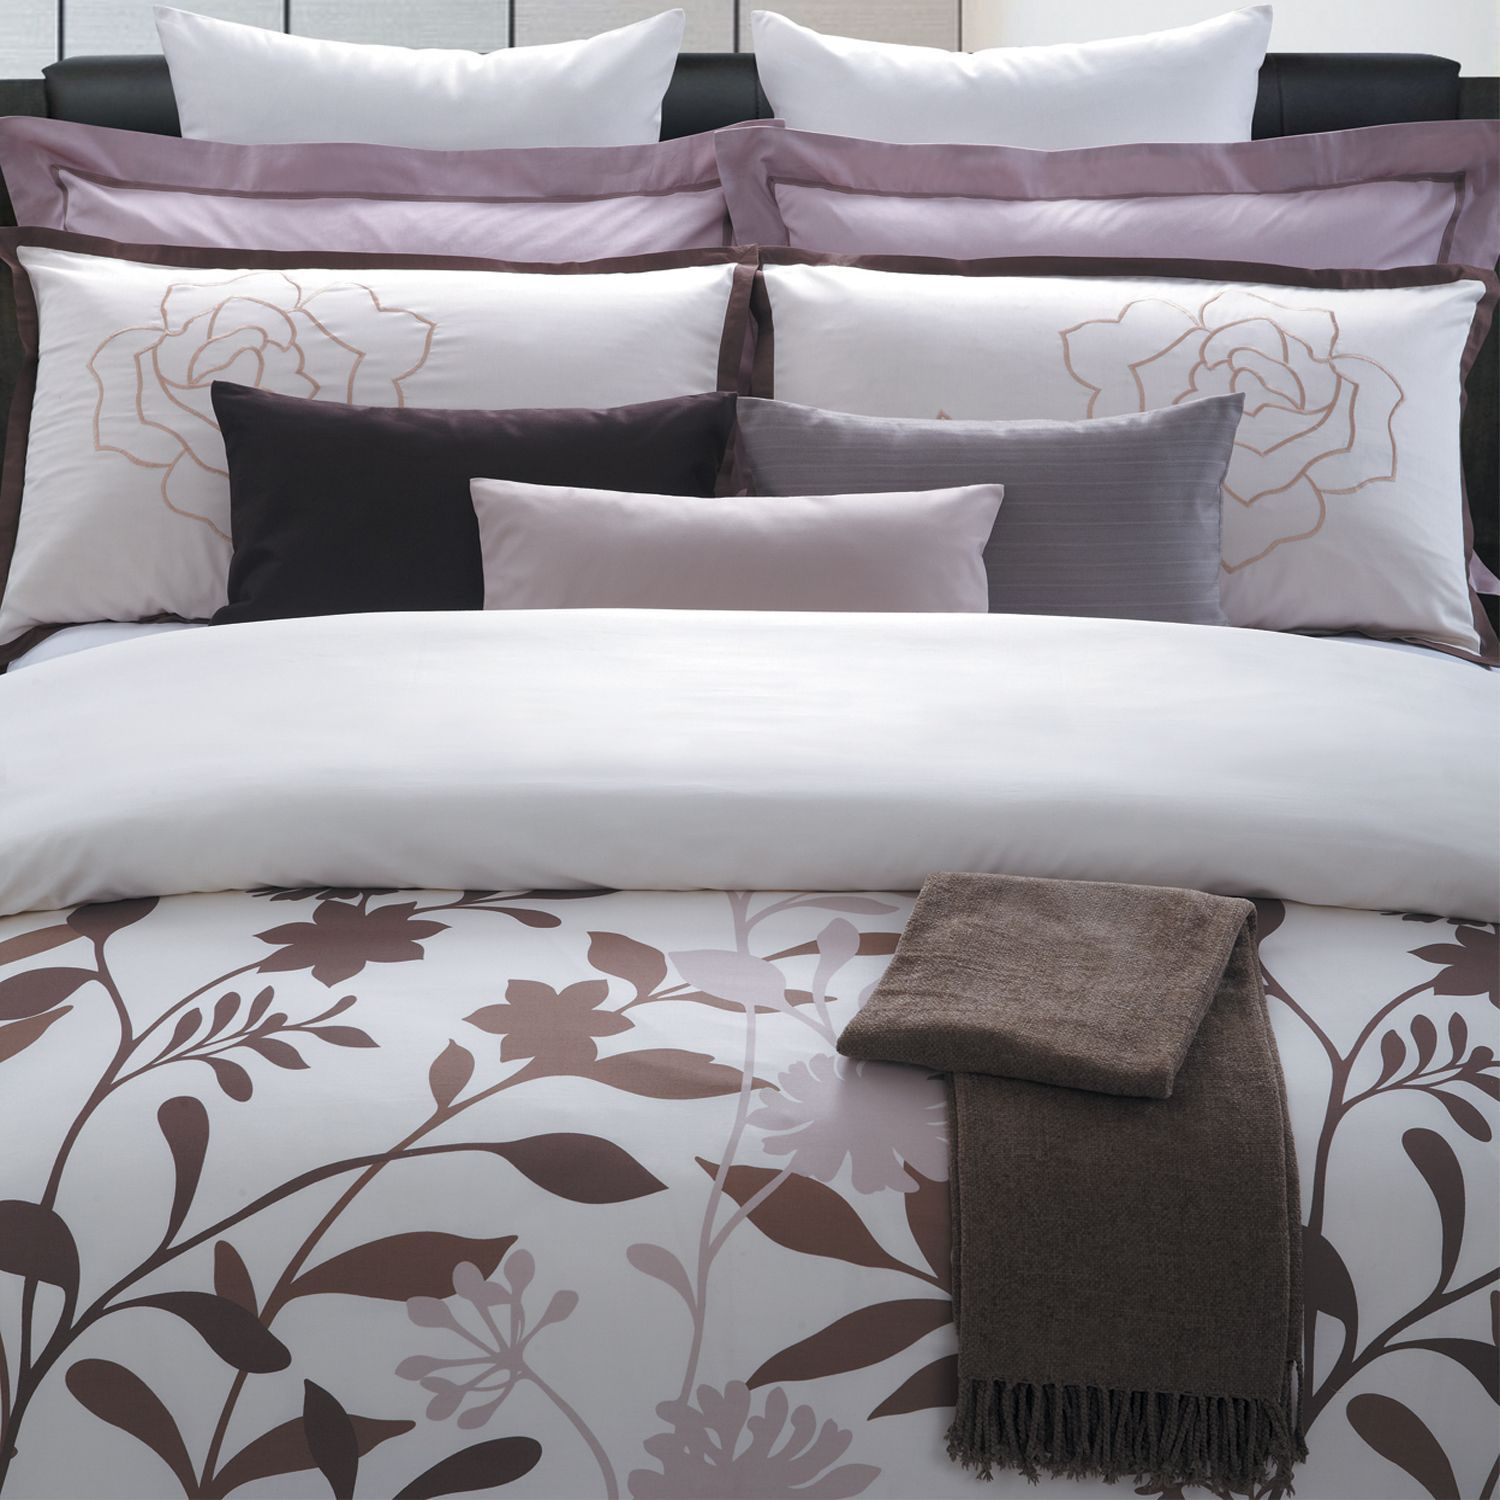 Bed room Cotton floral duvet covers are